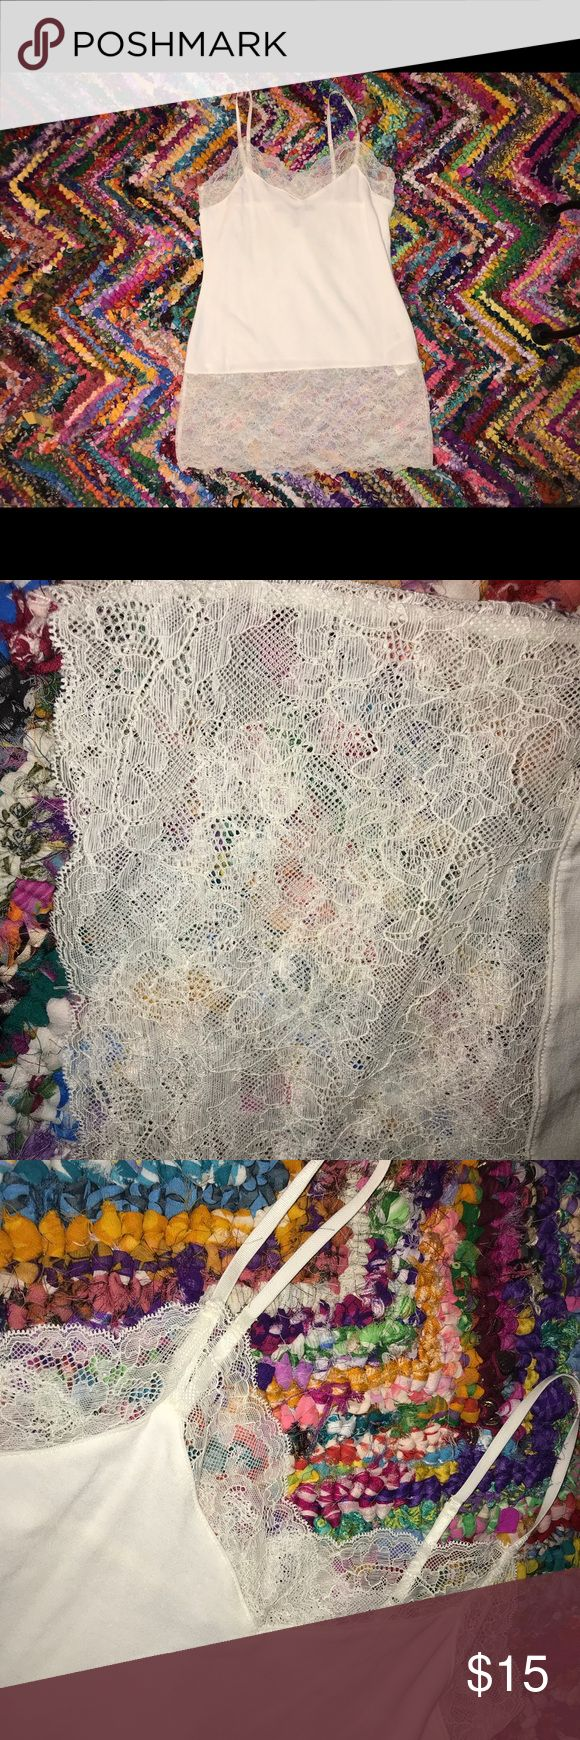 WHBM White Tank with Lace Size XS NWOT This is a brand new top! Great for layering or just lounging. Pair it with a tight, leather bomber jacket and some mean boots. Straps are adjustable. Never been worn White House Black Market Tops Tank Tops